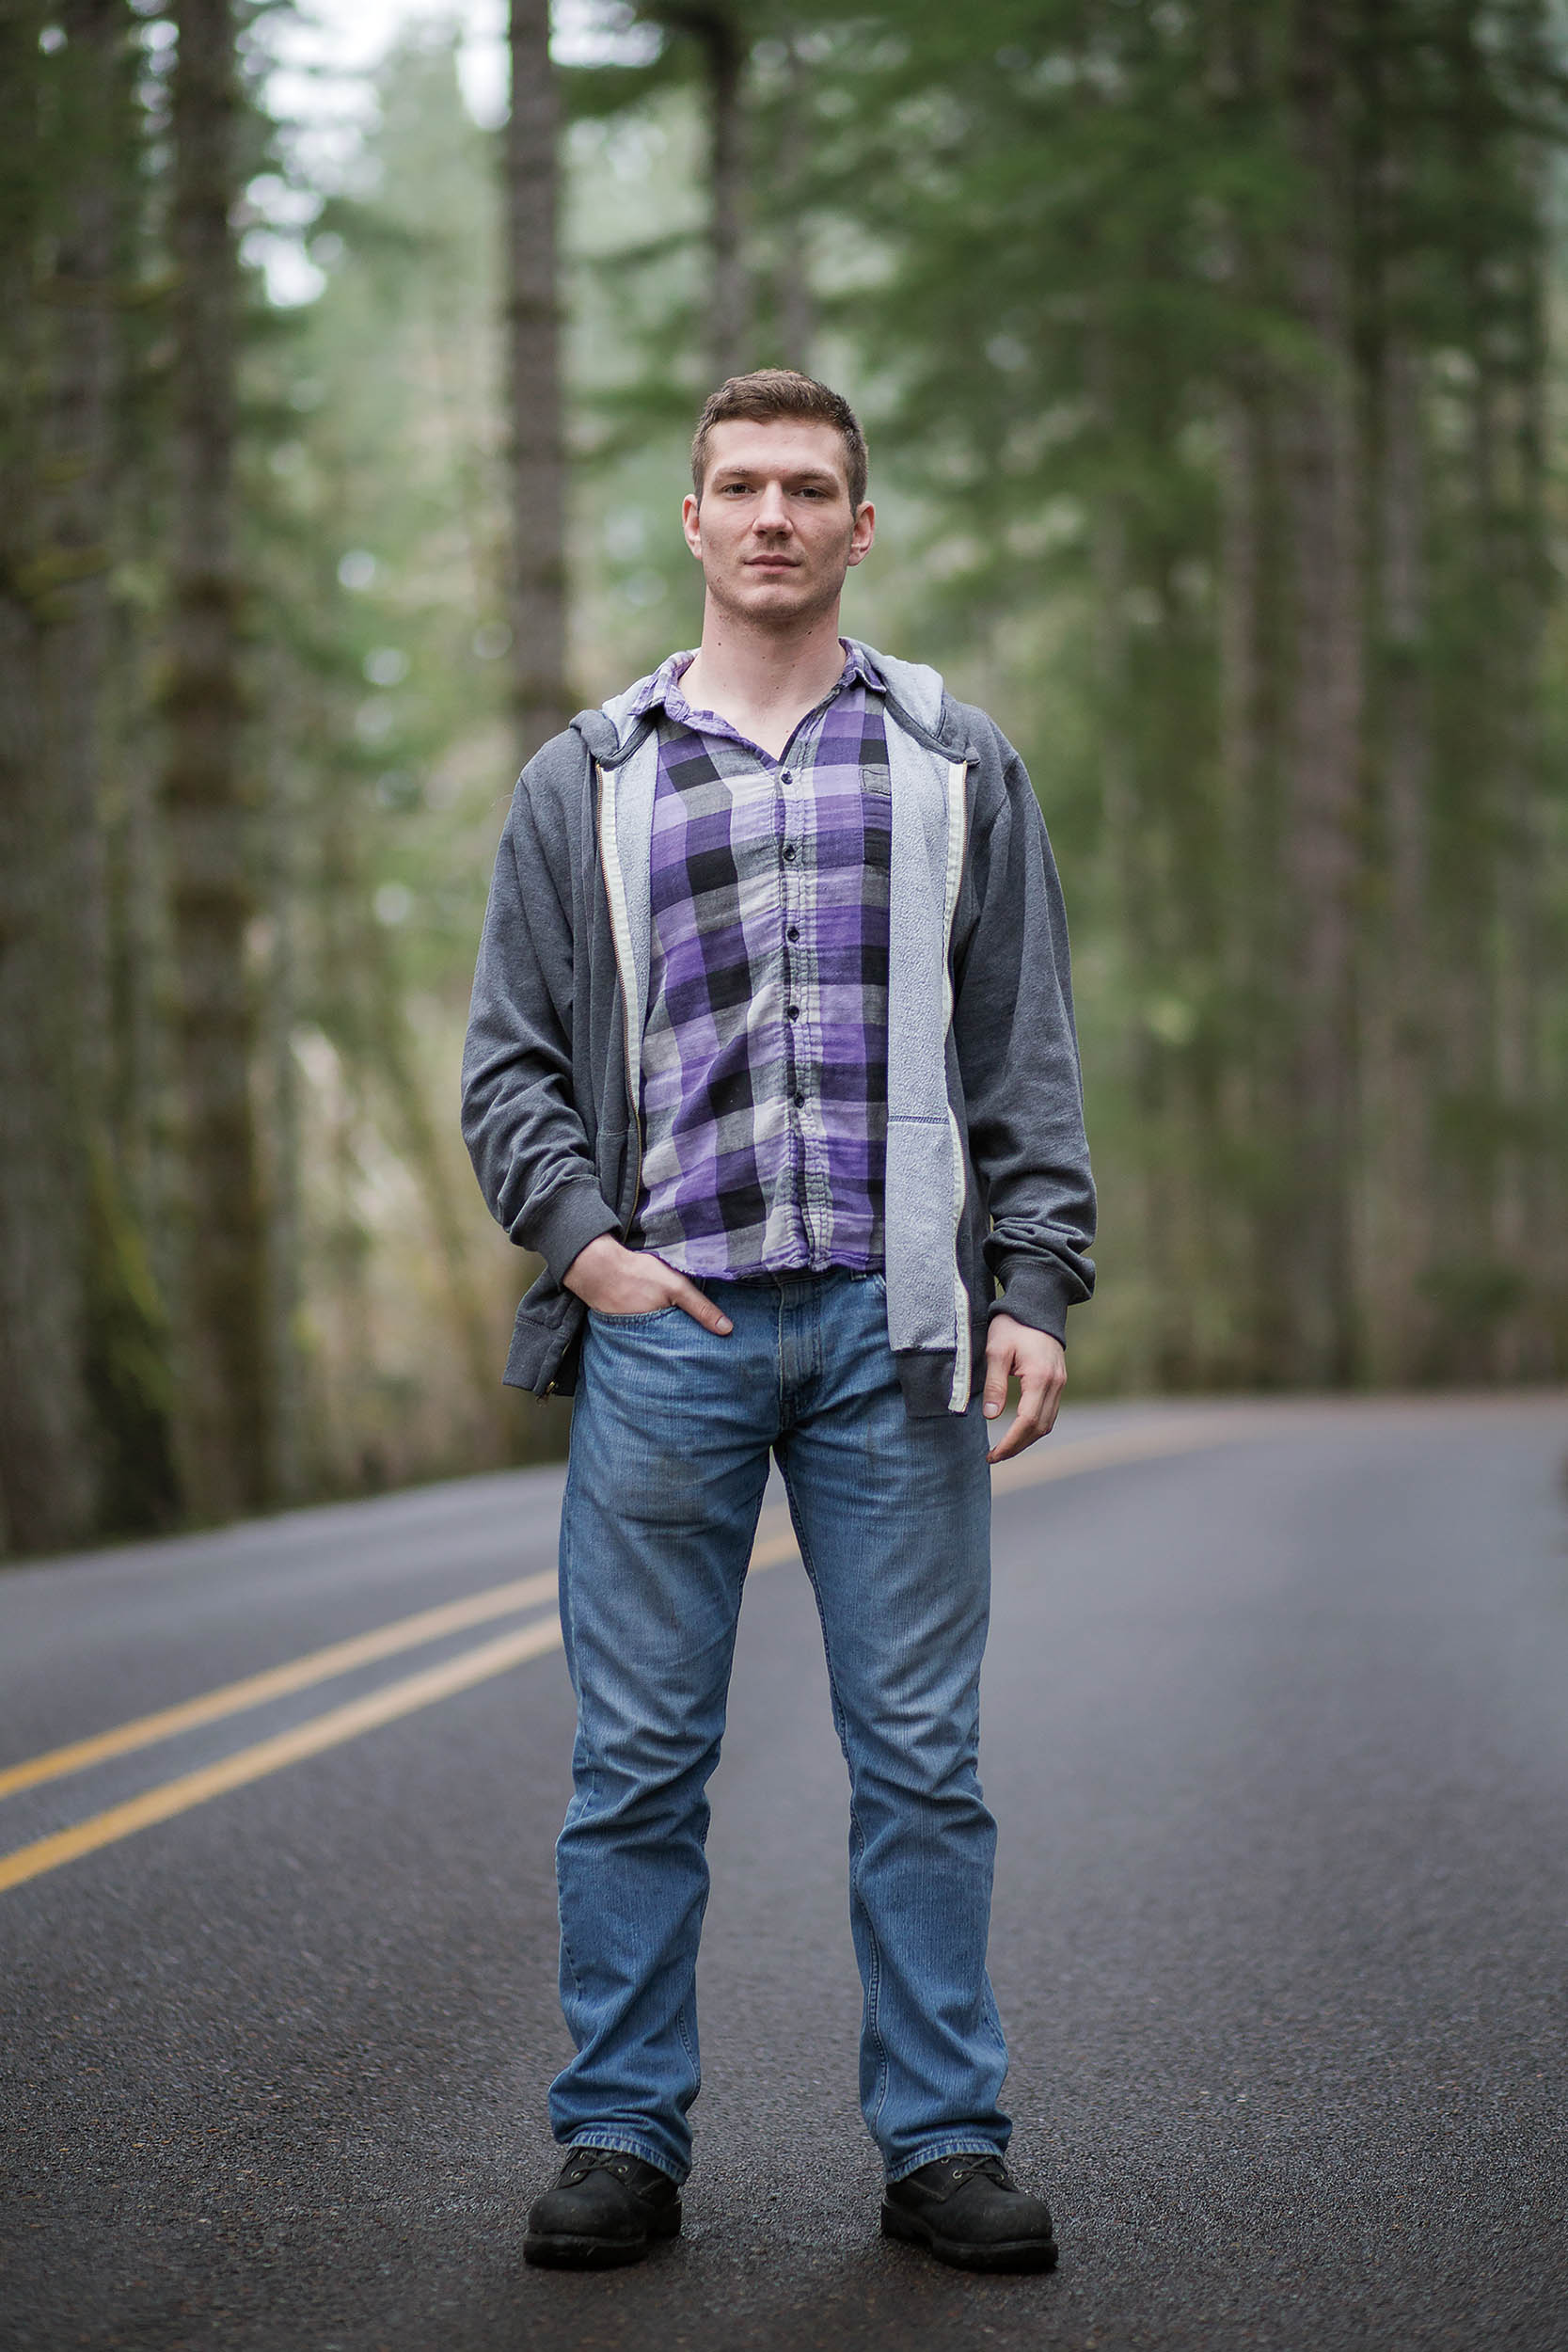 Connor_forest_corvallis copy.jpg